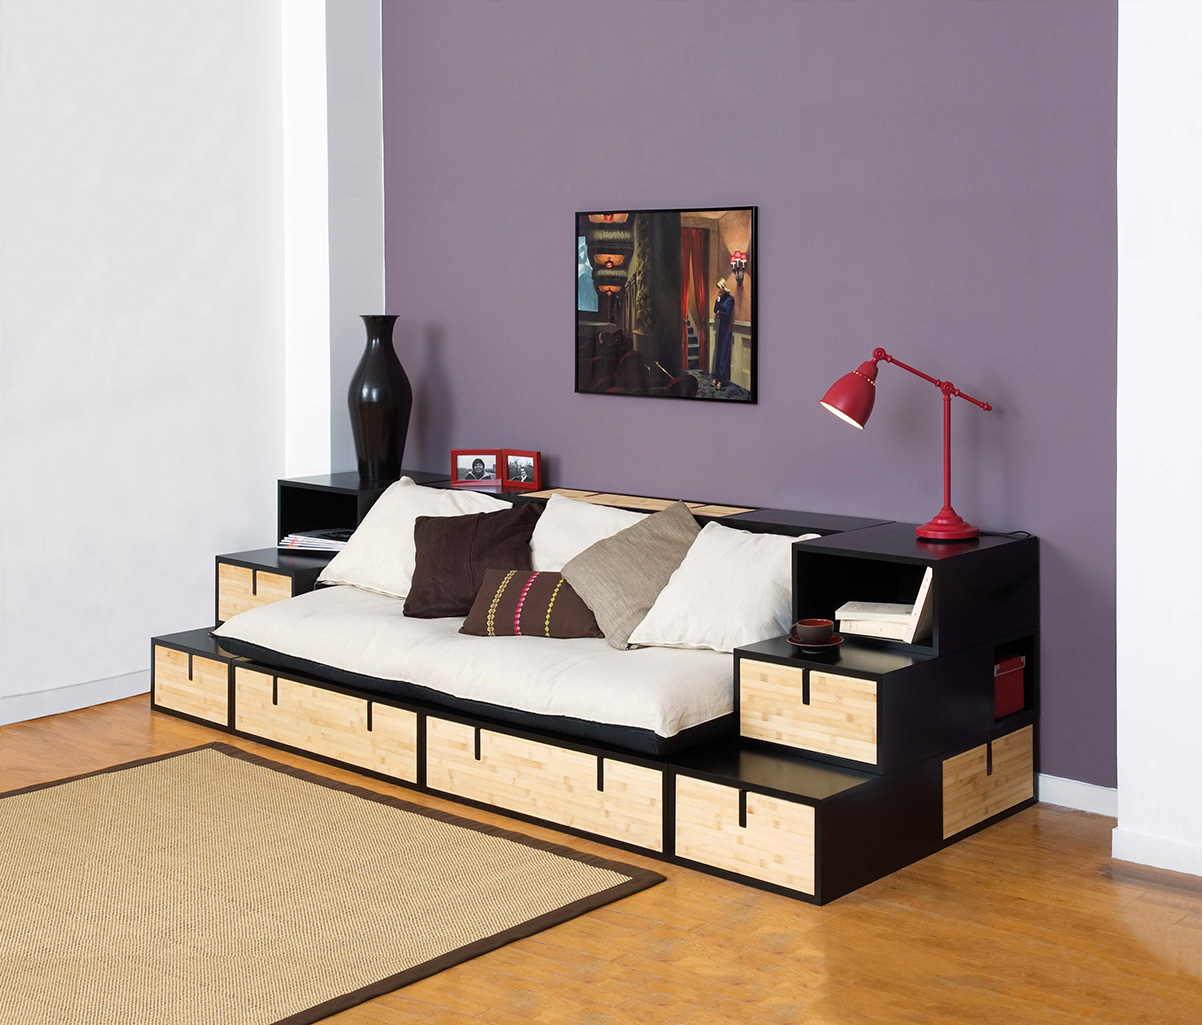 canap lit rangement royal sofa id e de canap et meuble maison. Black Bedroom Furniture Sets. Home Design Ideas